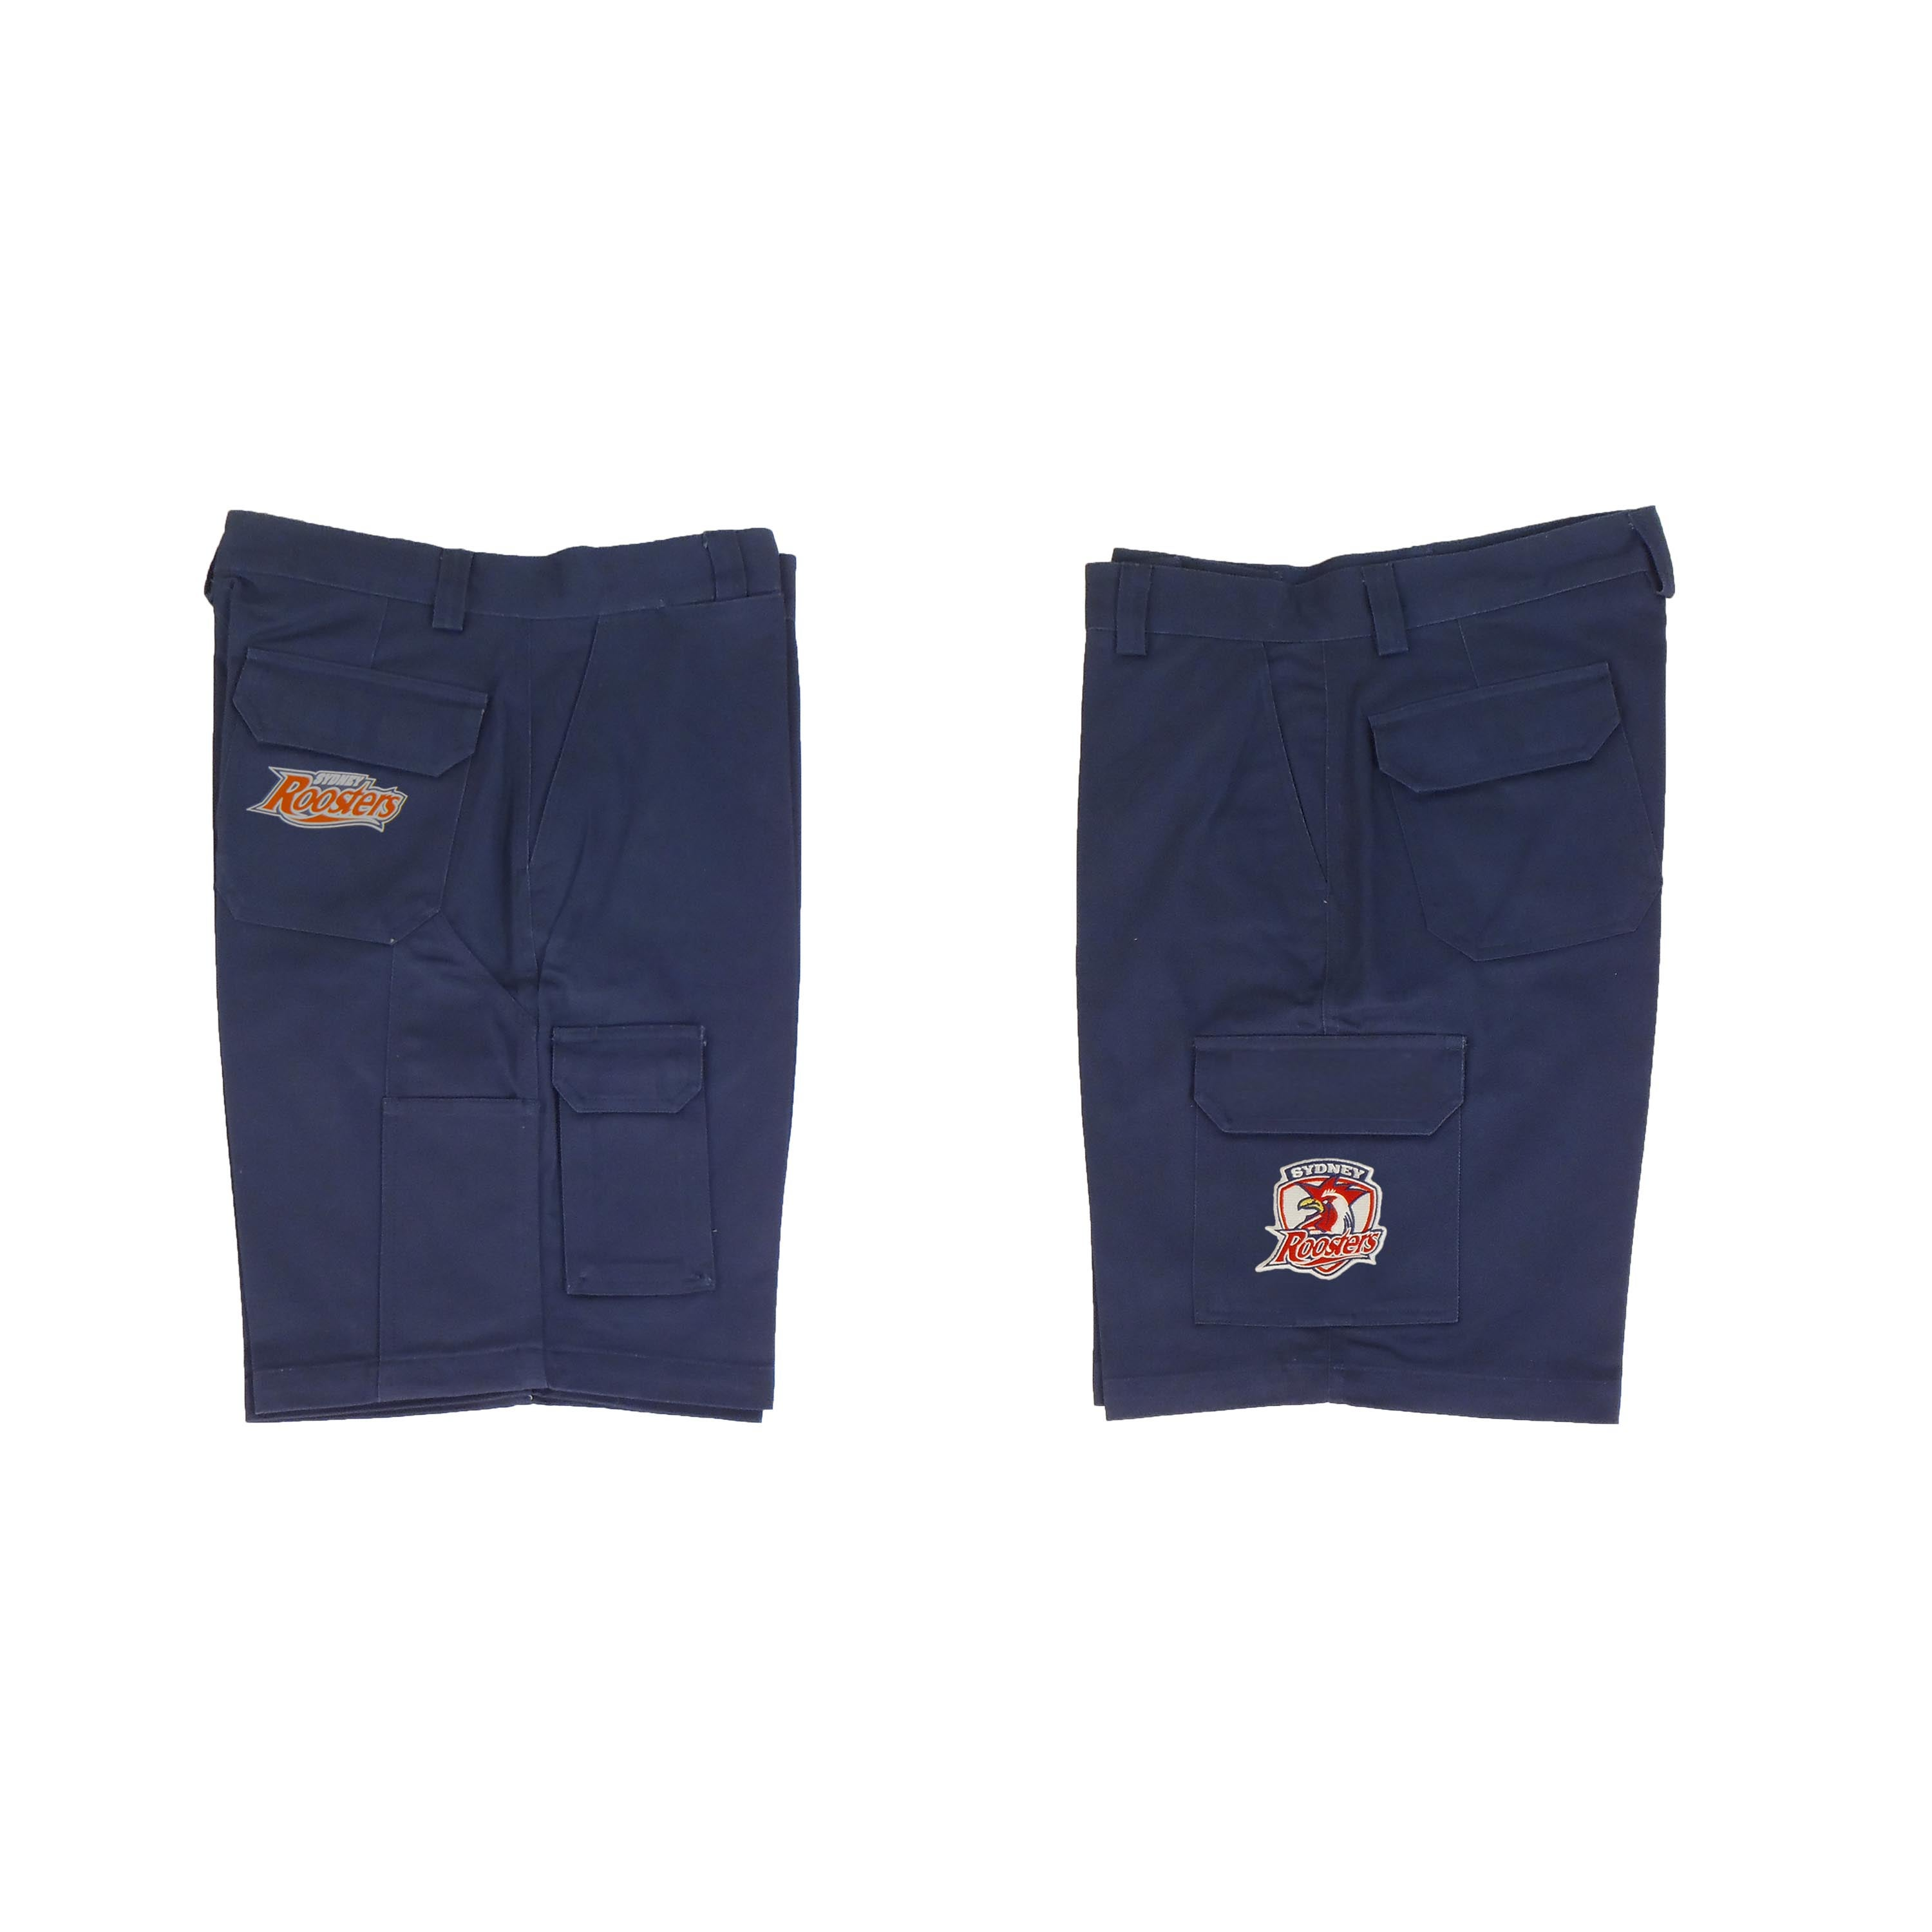 Sydney Roosters NRL Cargo Work Shorts Navy